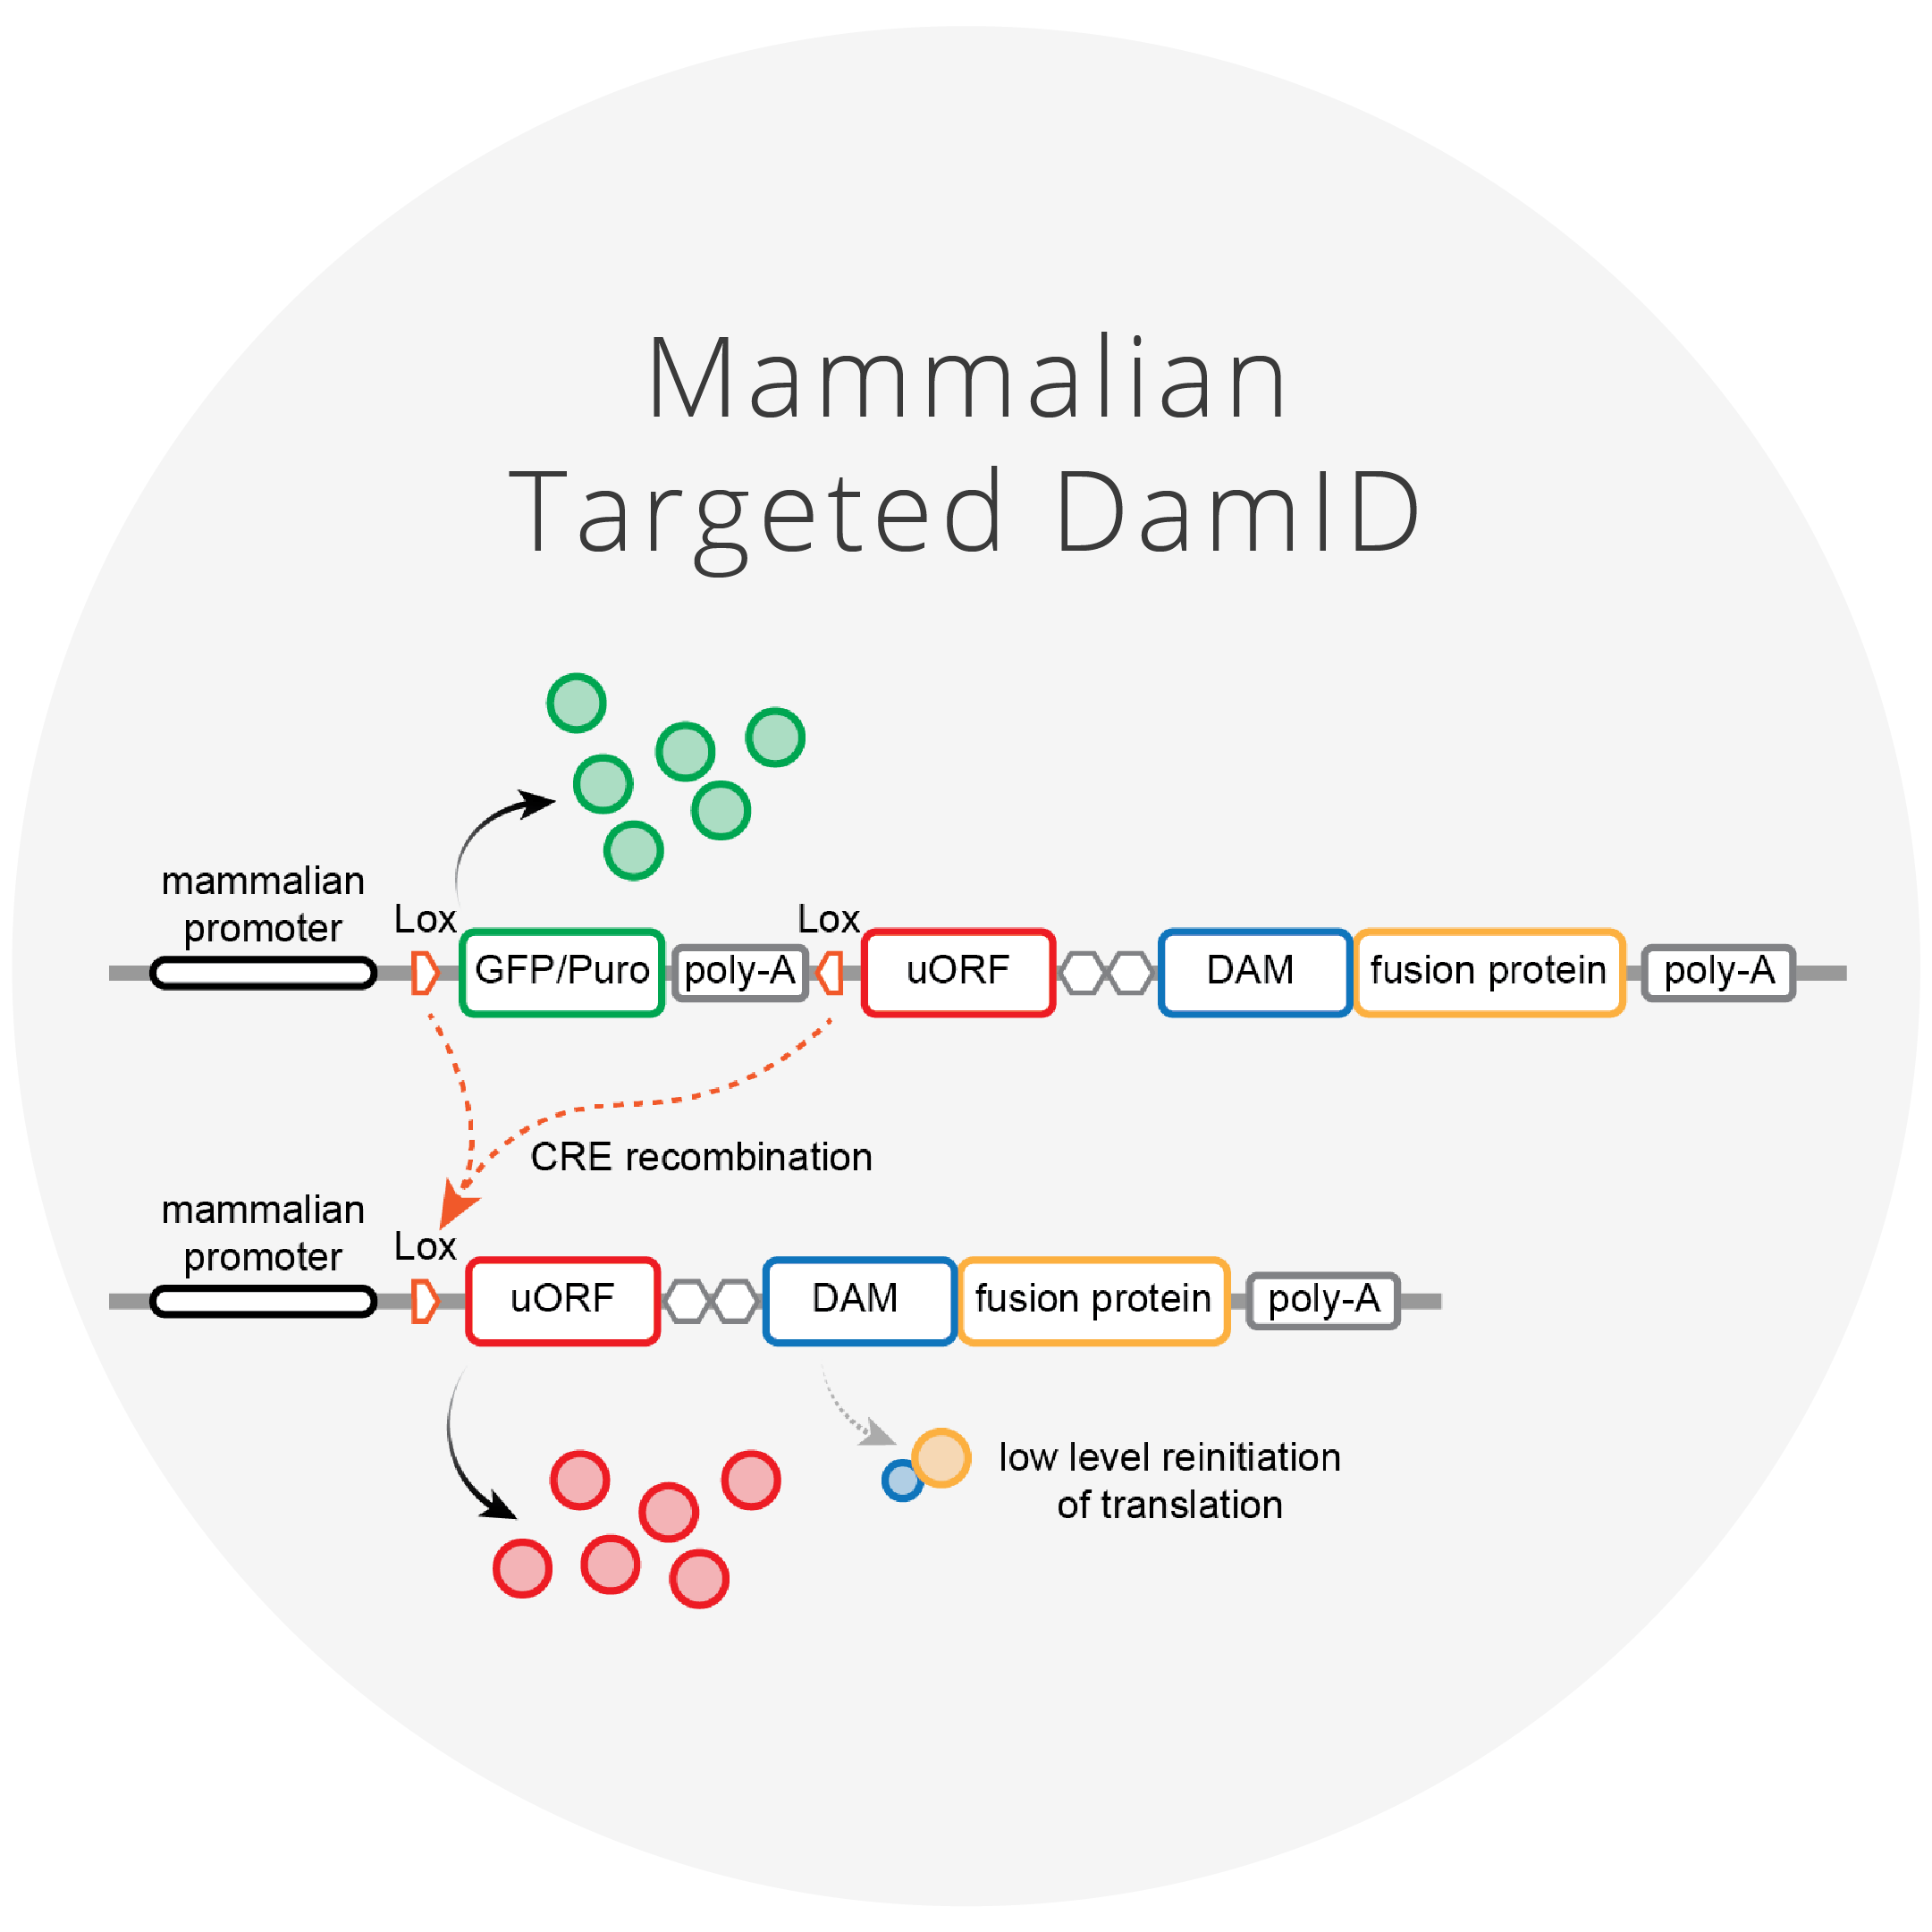 Mammalian Targeted DamID   We have modified TaDa to generate mammalian TaDa (MaTaDa), which can be used to identify genome-wide protein/DNA interactions in 100 to 1000 times fewer cells than ChIP-based approaches.   Click for more information and reagents.